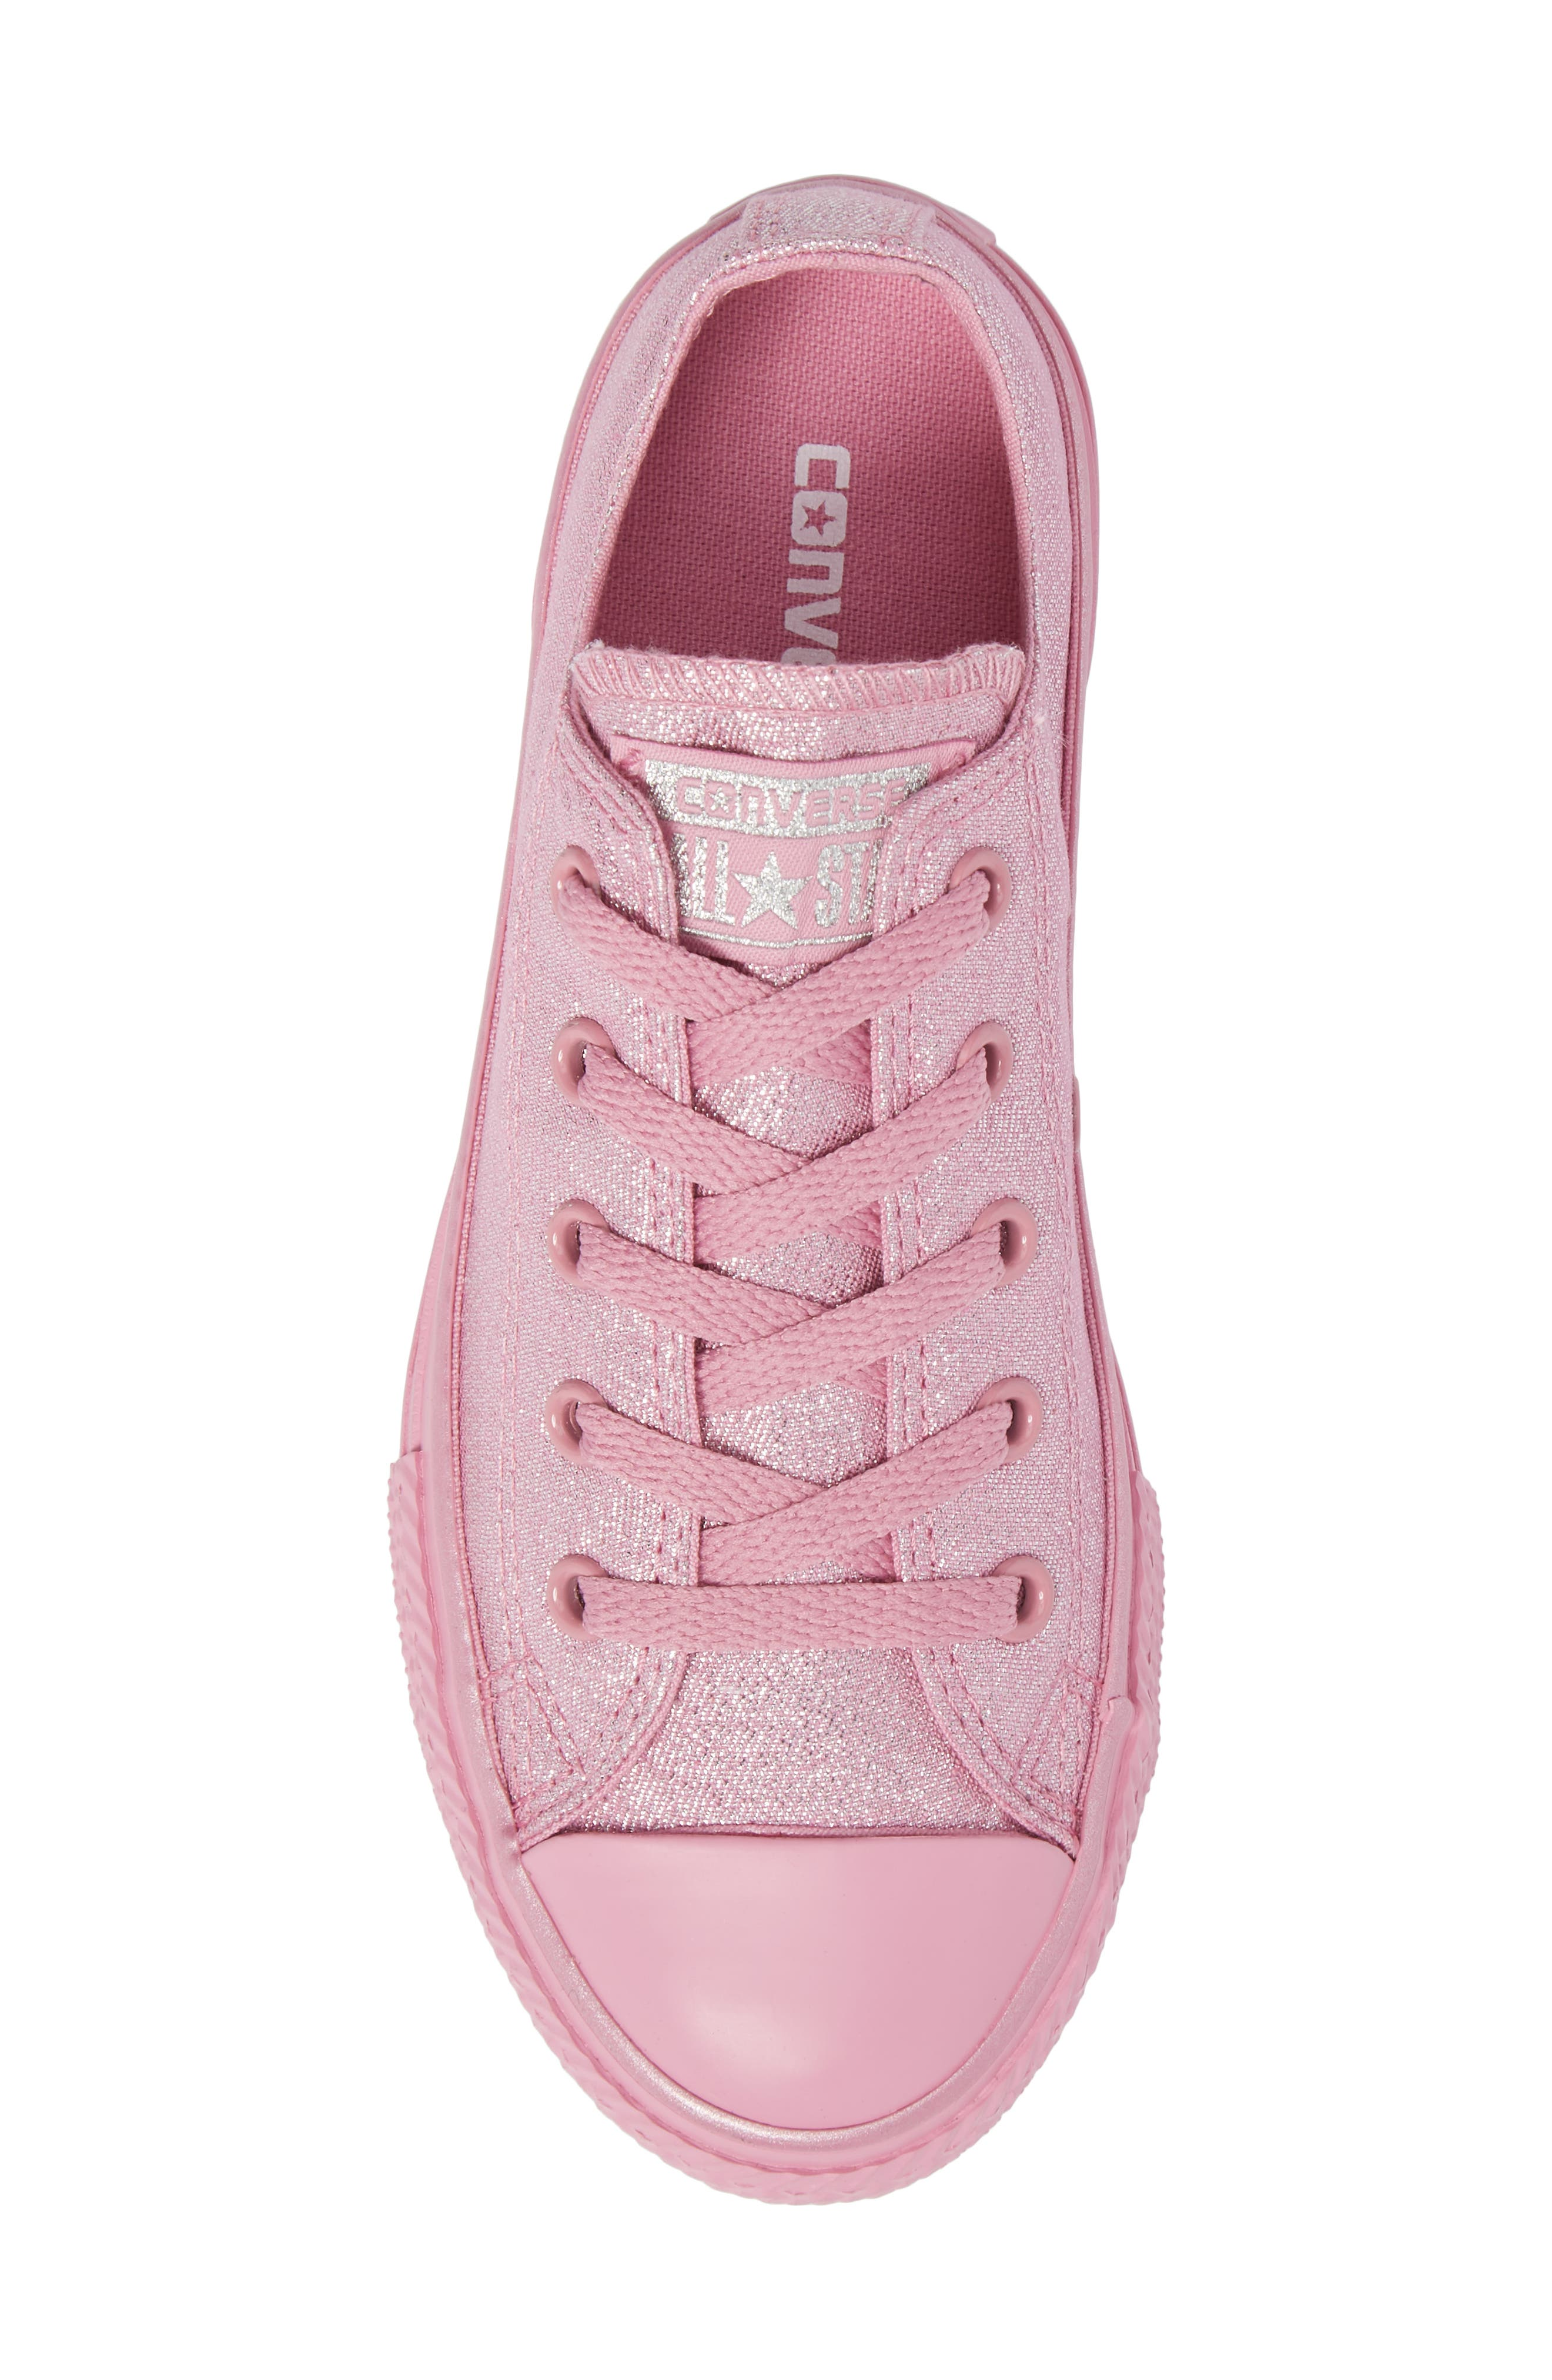 All Star<sup>®</sup> Mono Shine Low Top Sneaker,                             Alternate thumbnail 5, color,                             650